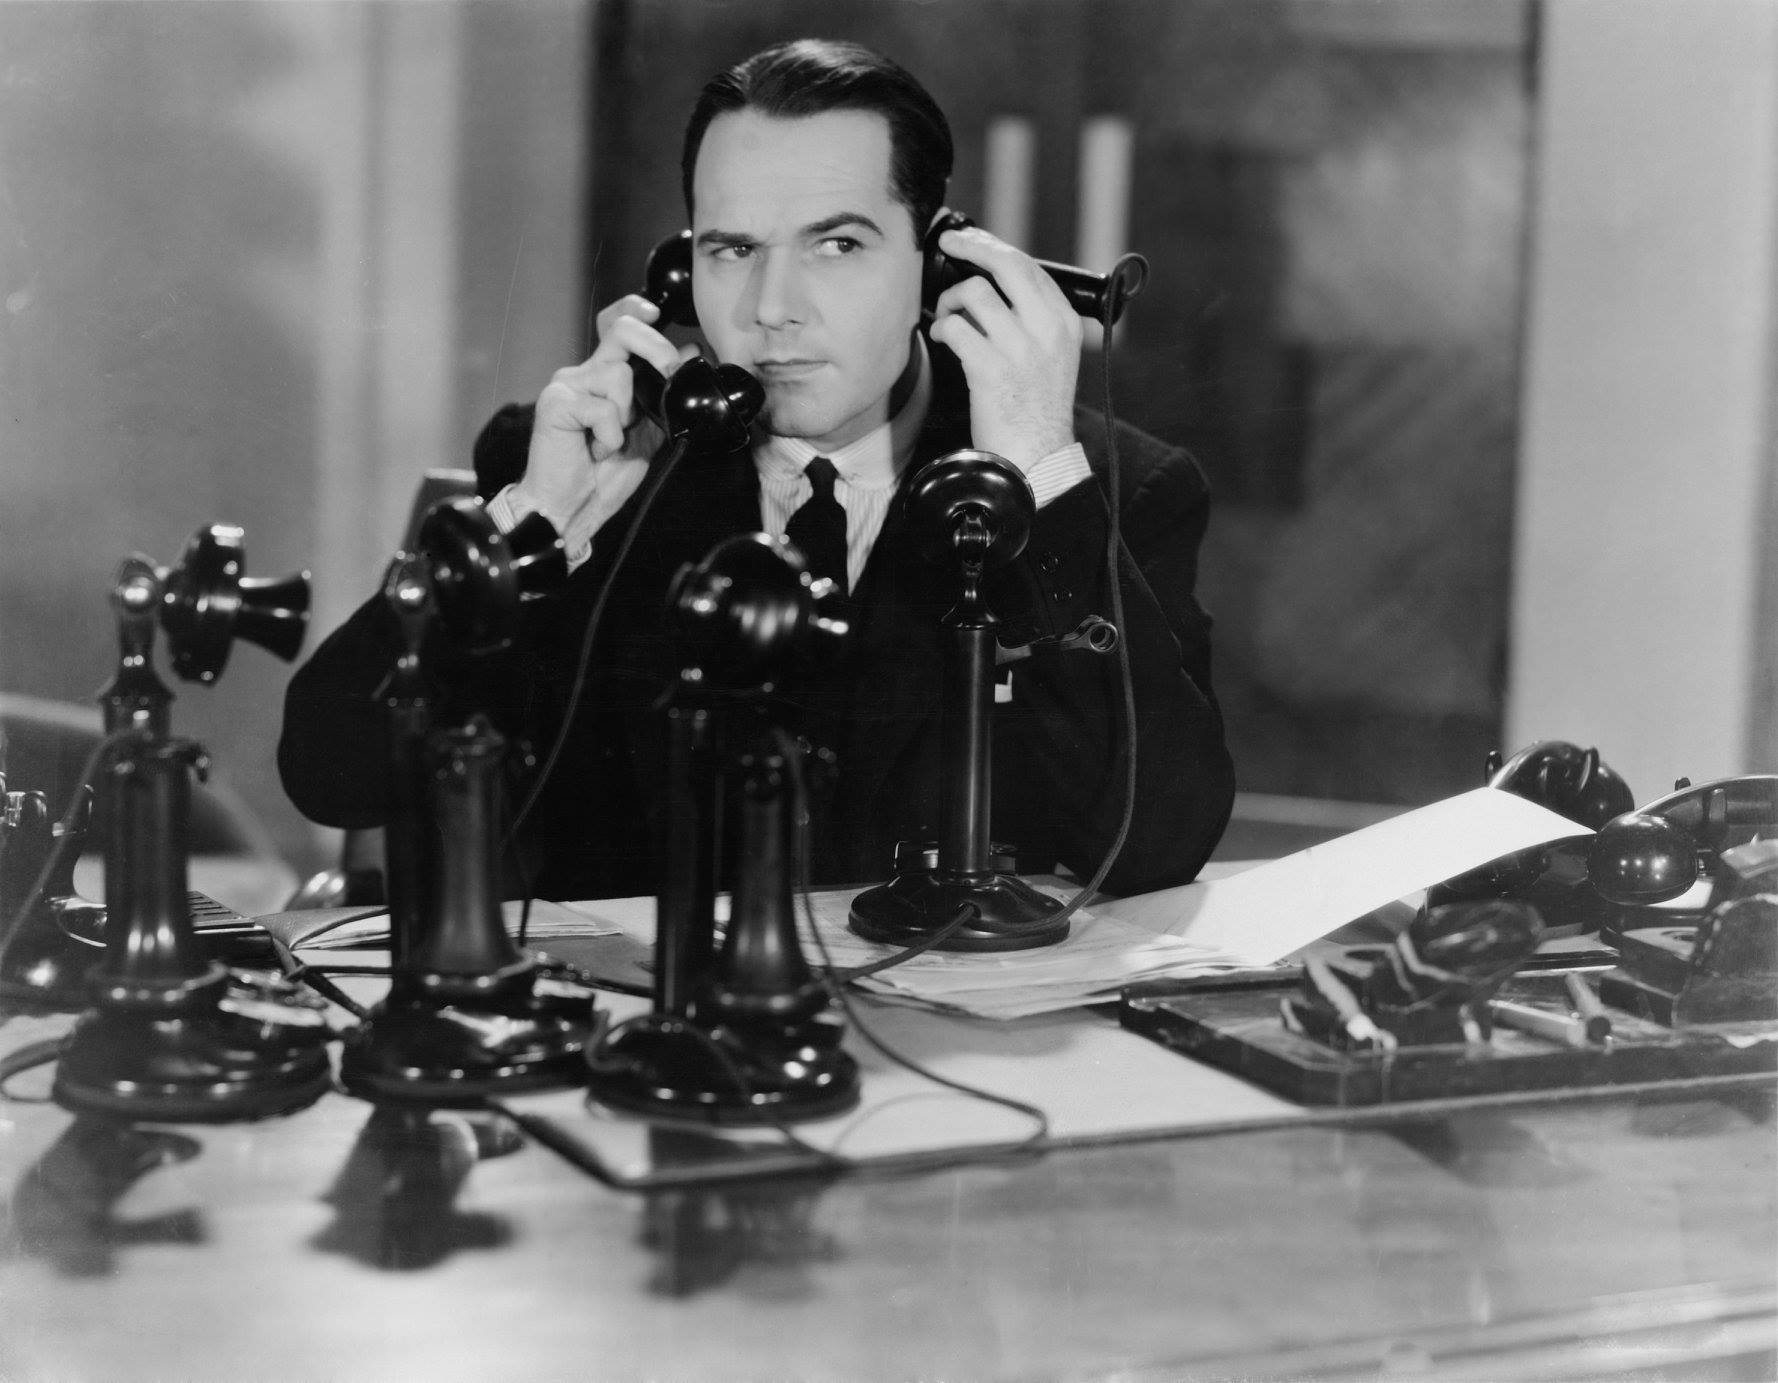 In a black and white photo a man tries to talk on several old fashioned phones.